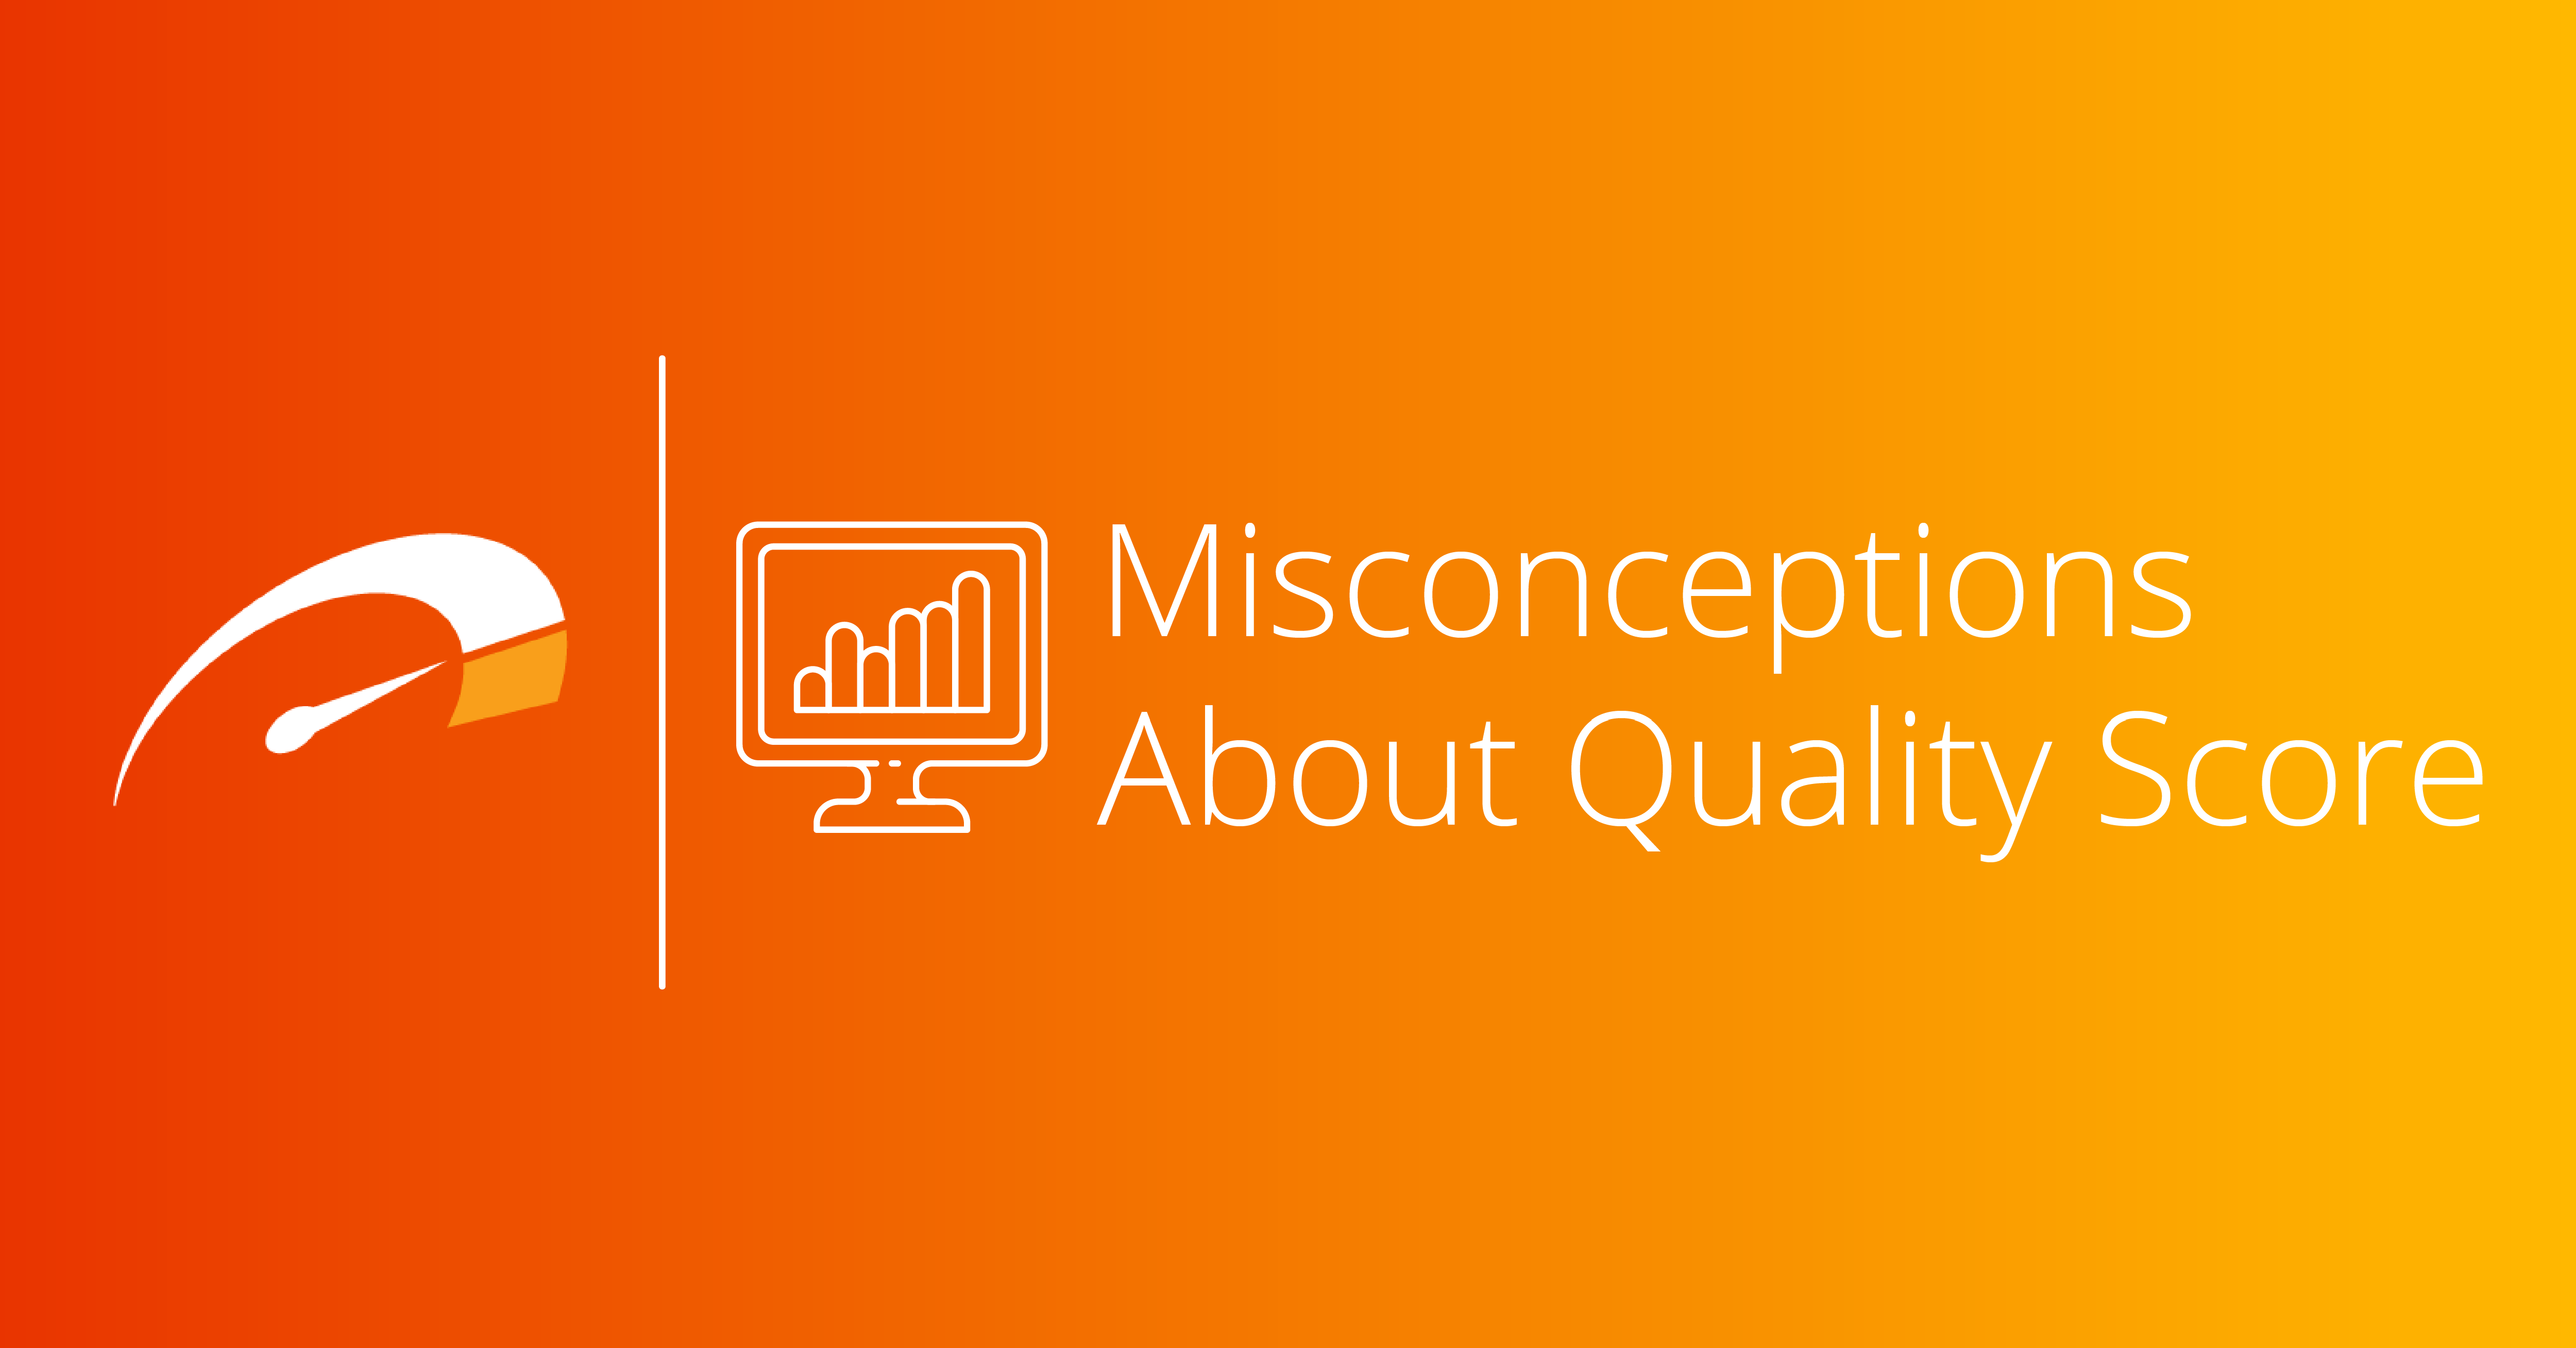 Misconceptions About Quality Score